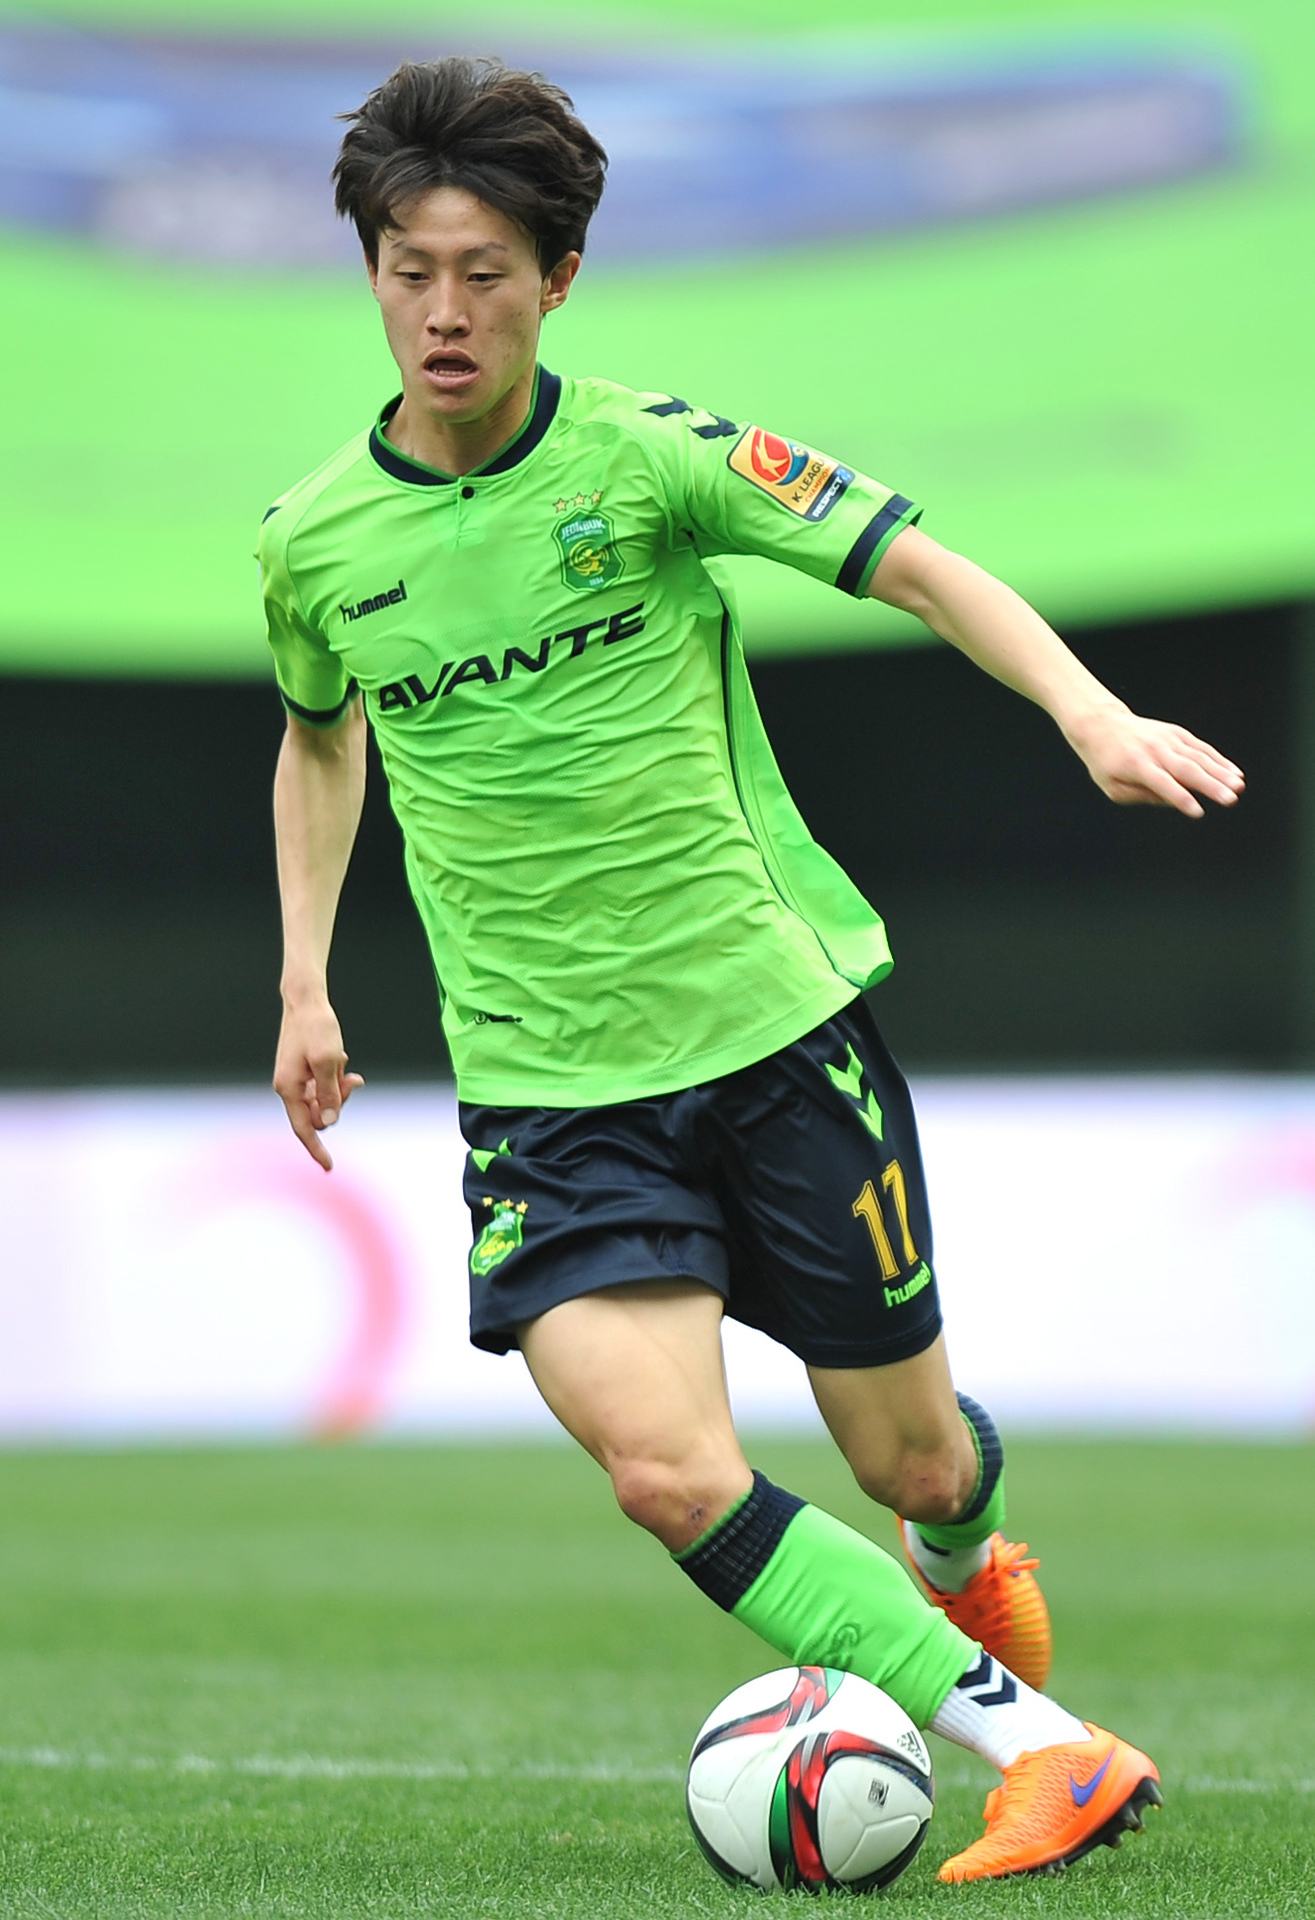 全北現代-2015-hummel-home-kit-AVANTE.jpg